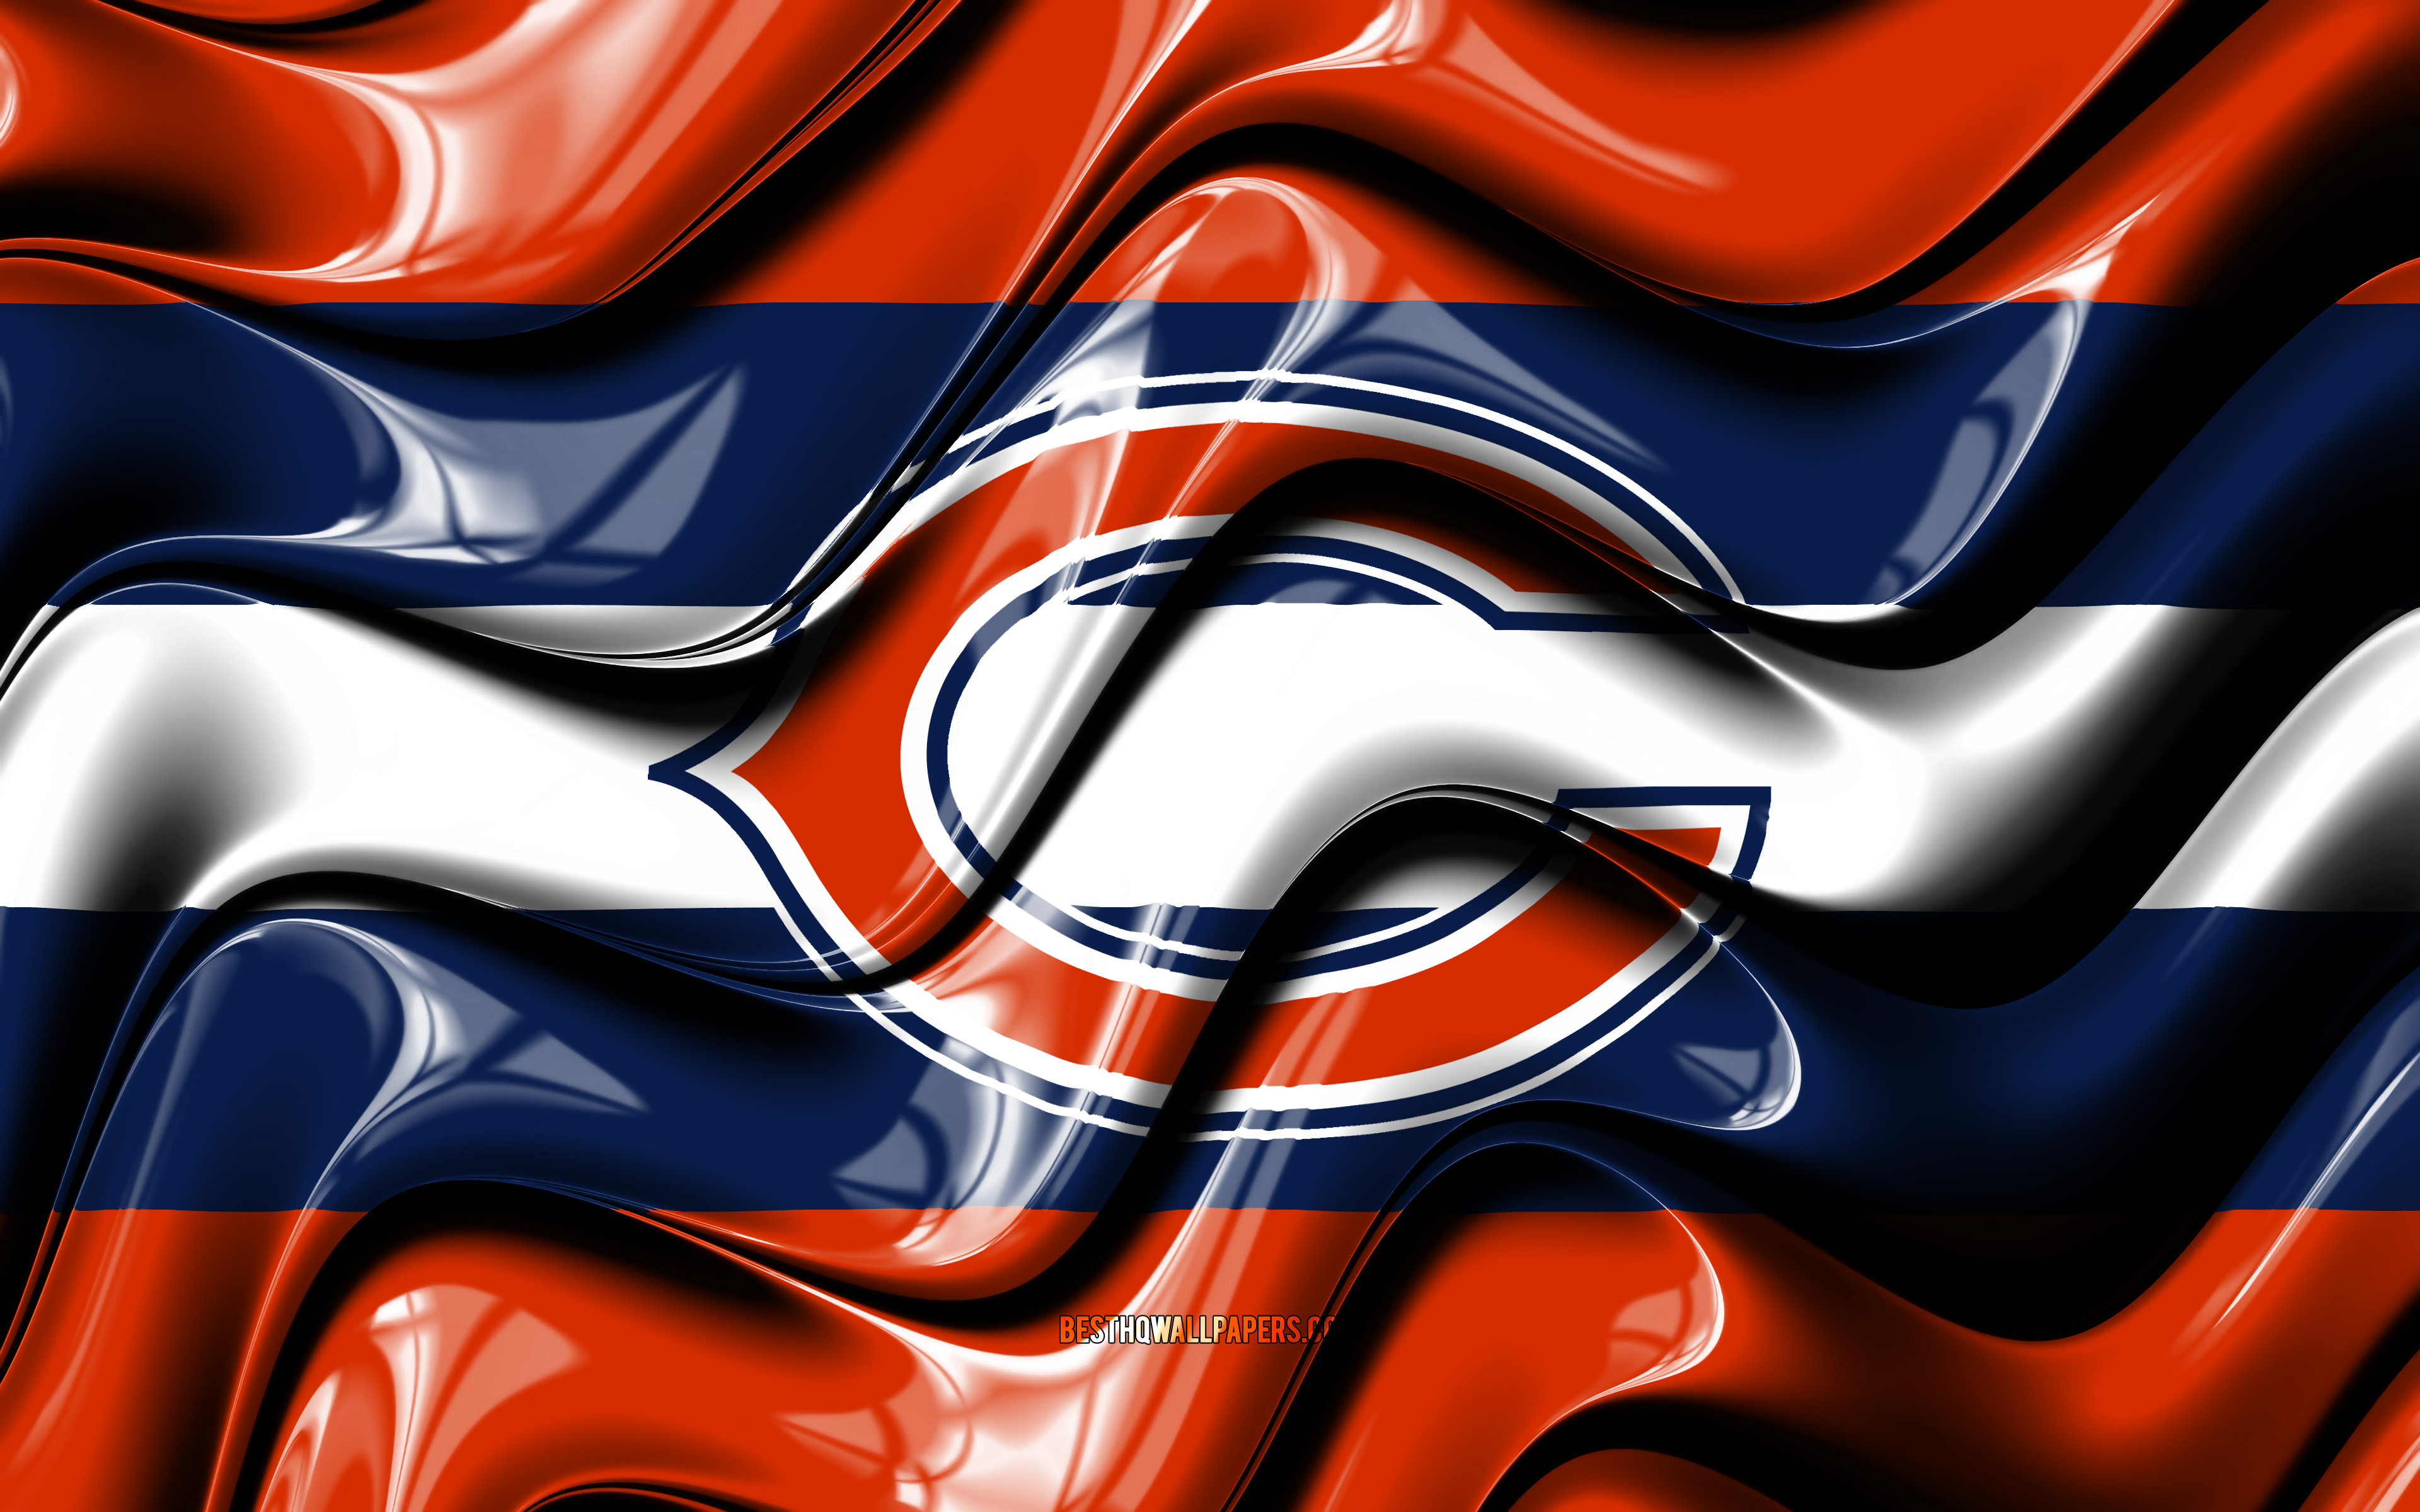 Download wallpapers Chicago Bears flag 4k orange and blue 3D 3840x2400